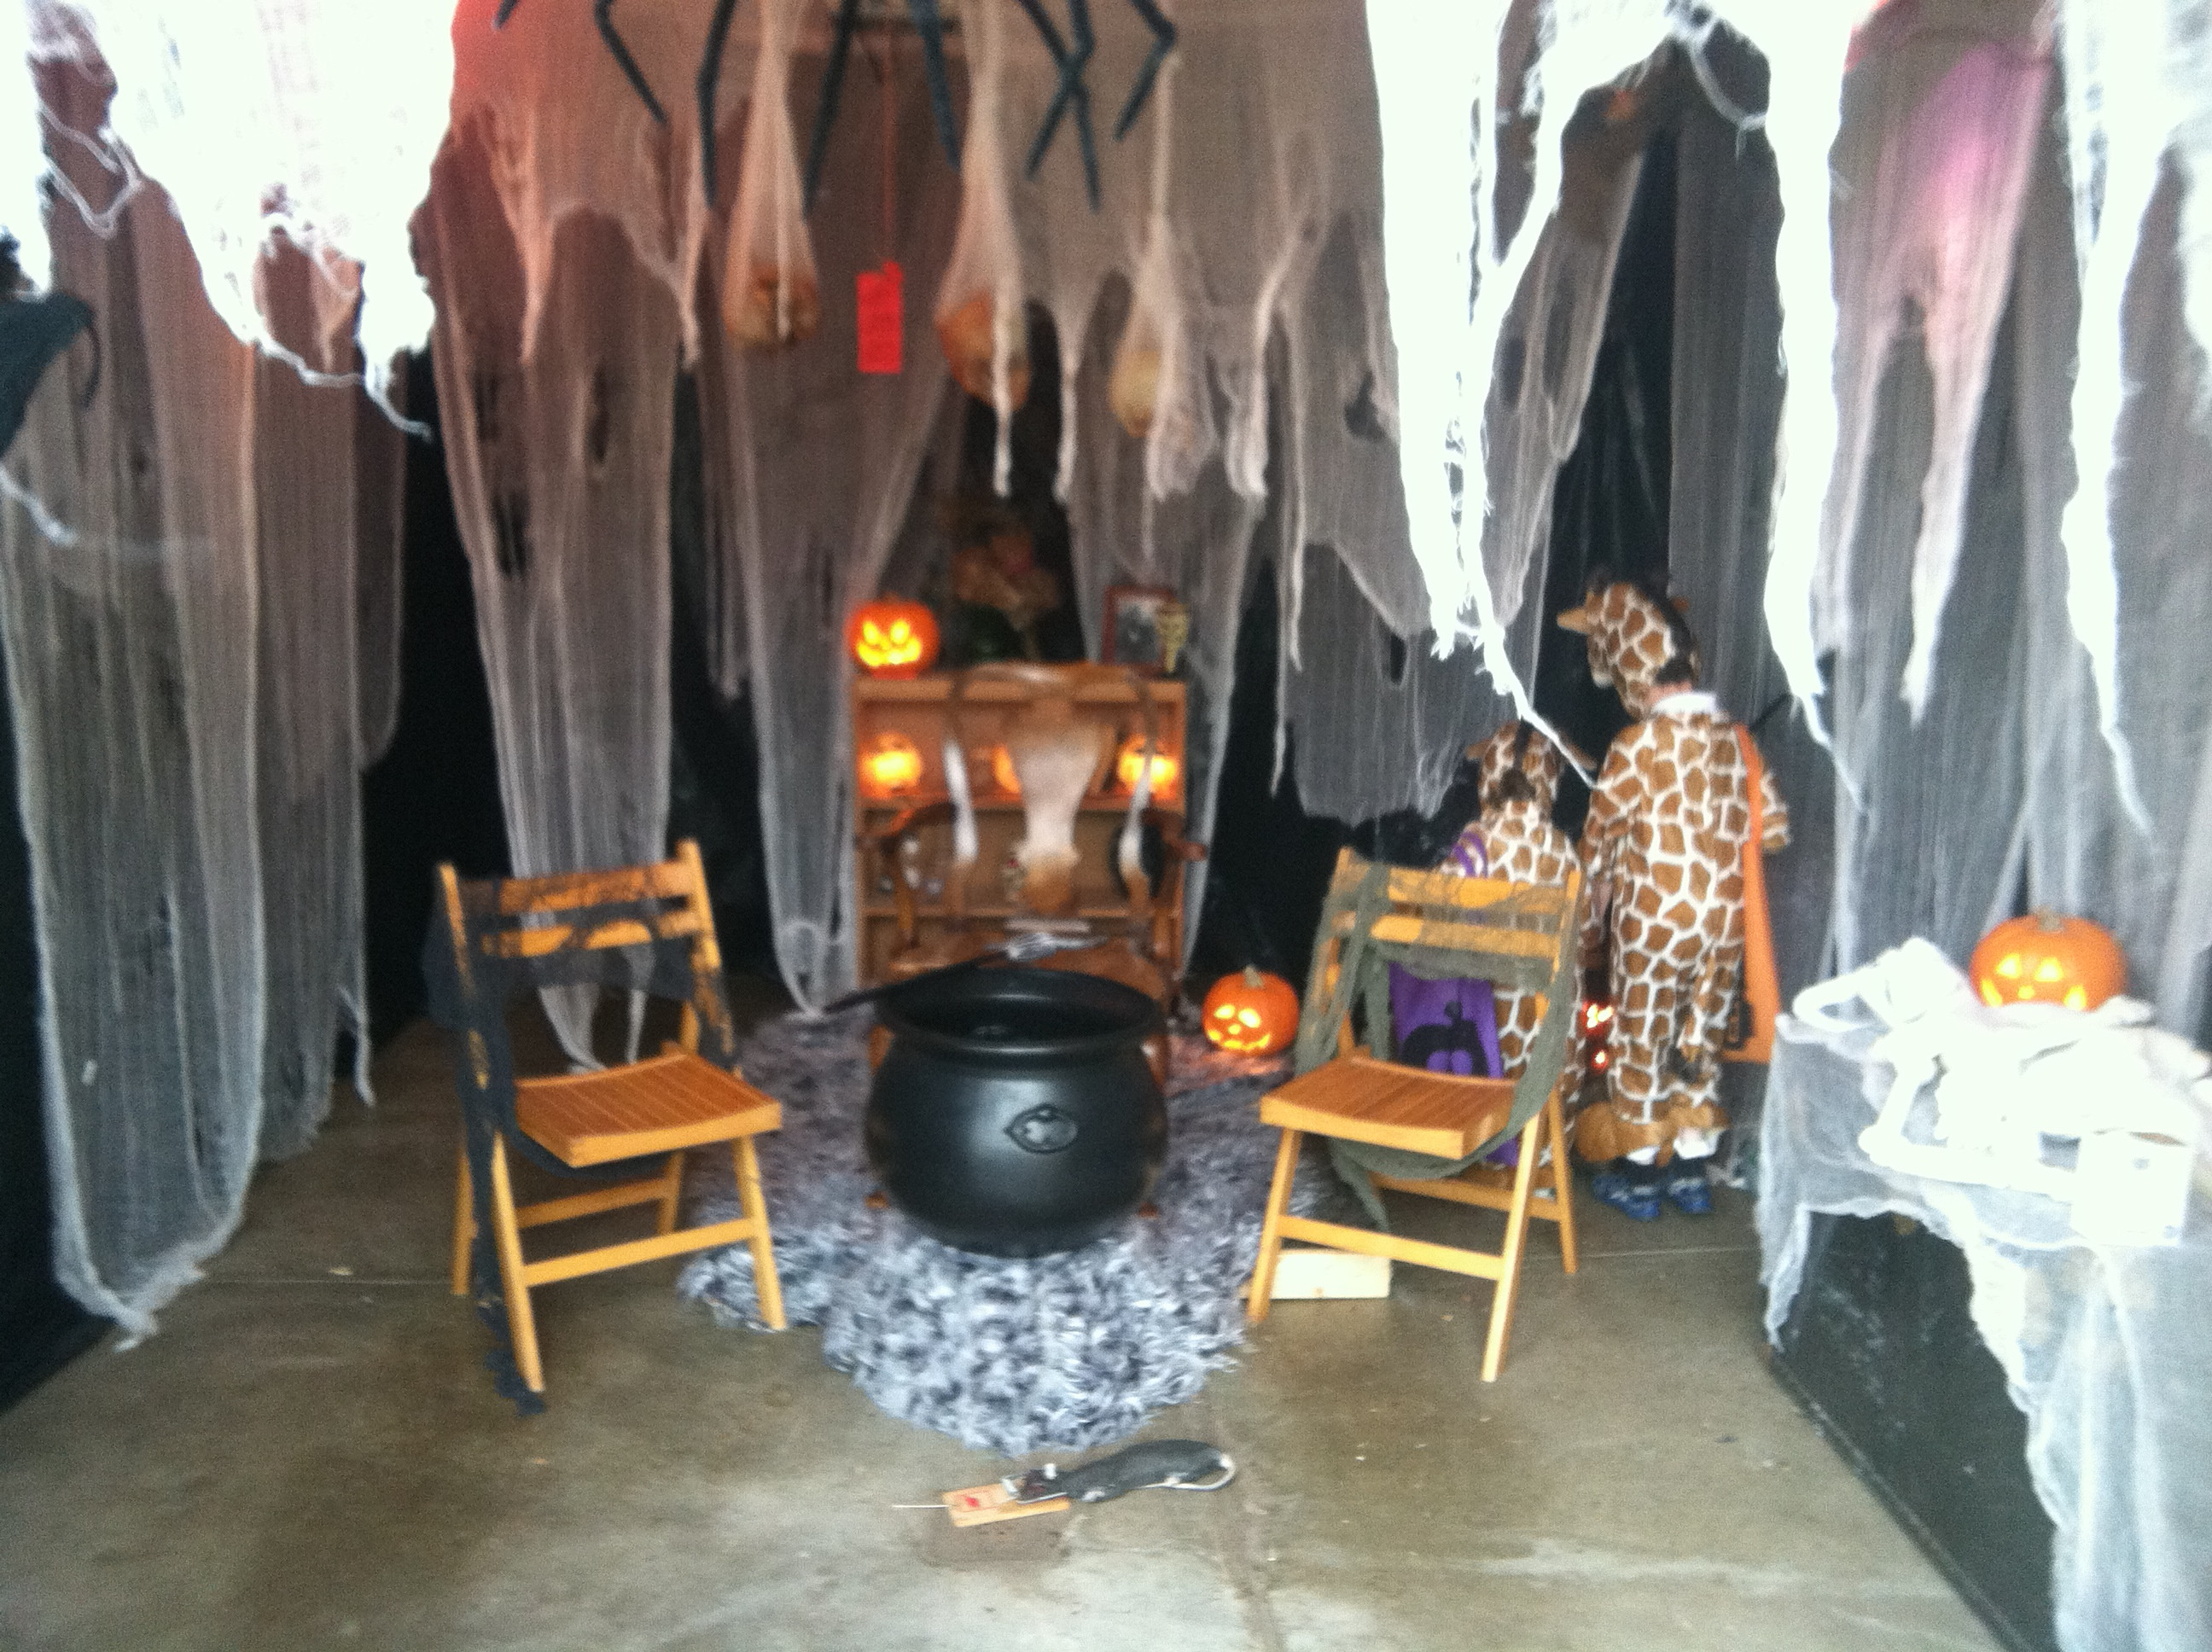 Garage Halloween Decorations  Halloween Home & Garage Decorations